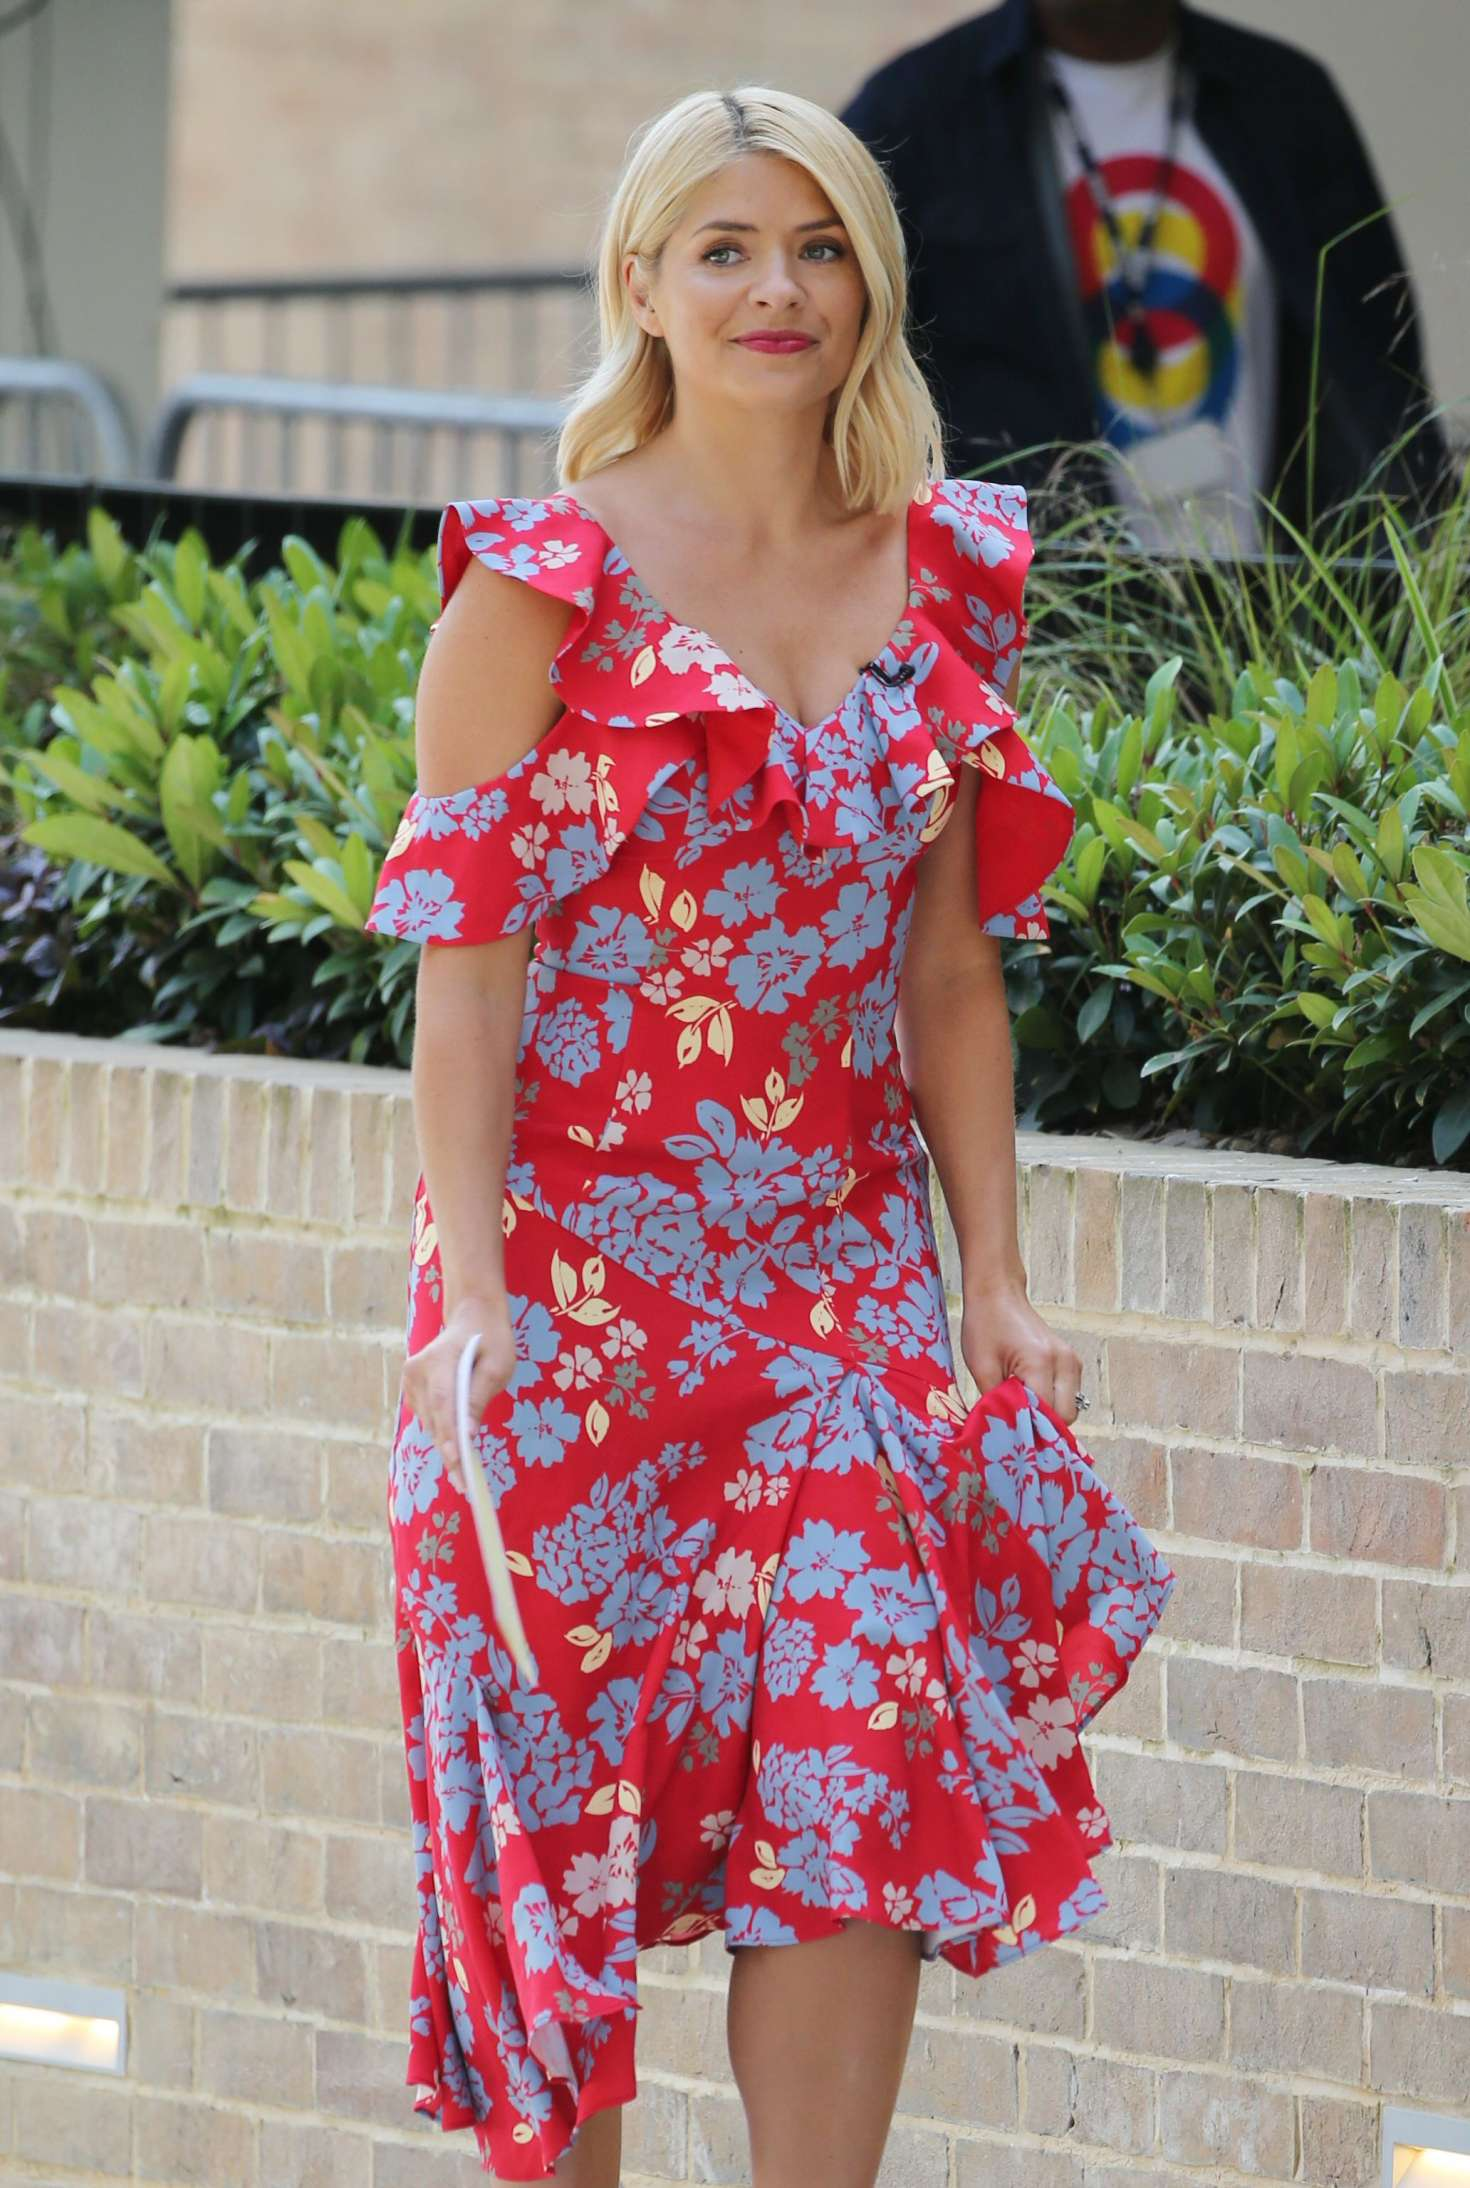 Holly Willoughby 2018 : Holly Willoughby at ITV Studios -02